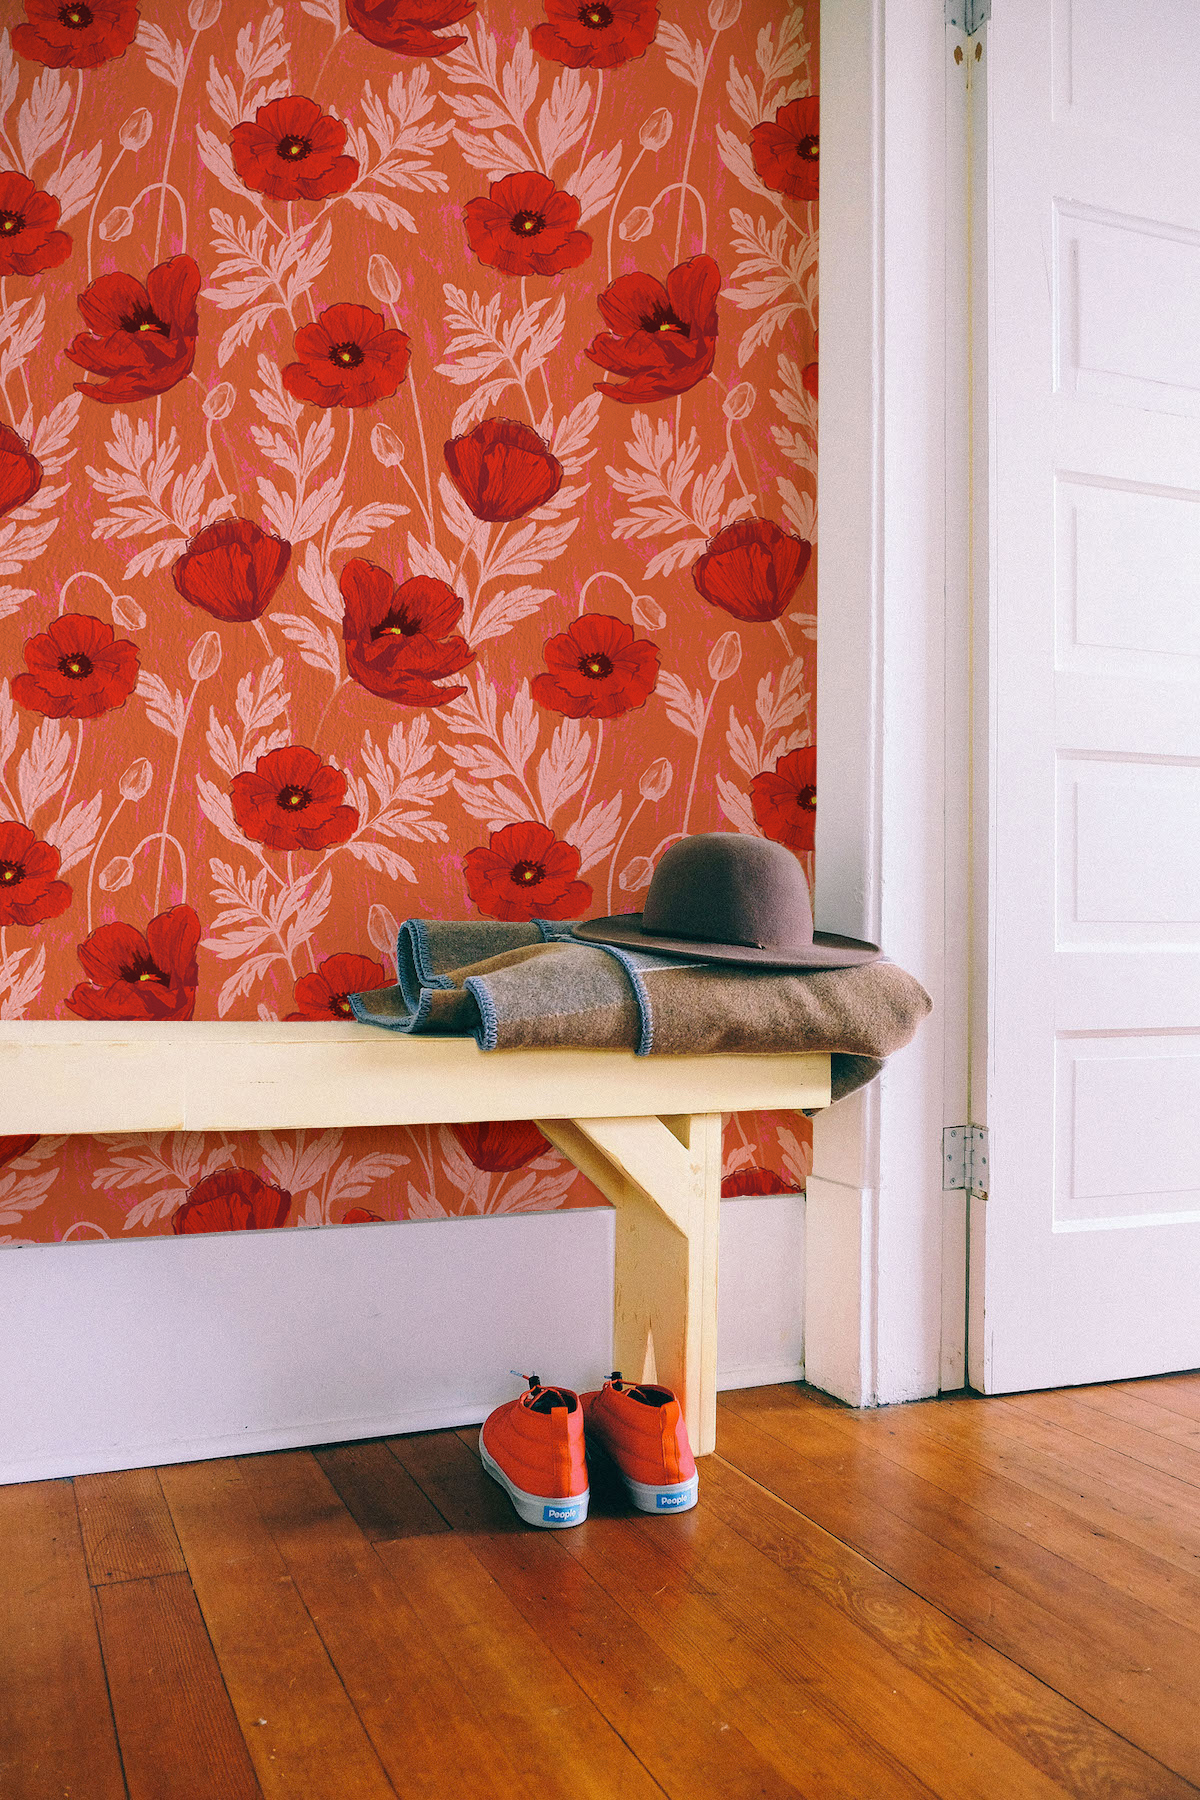 Hallway-wallpaper-poppies-1200w.jpg